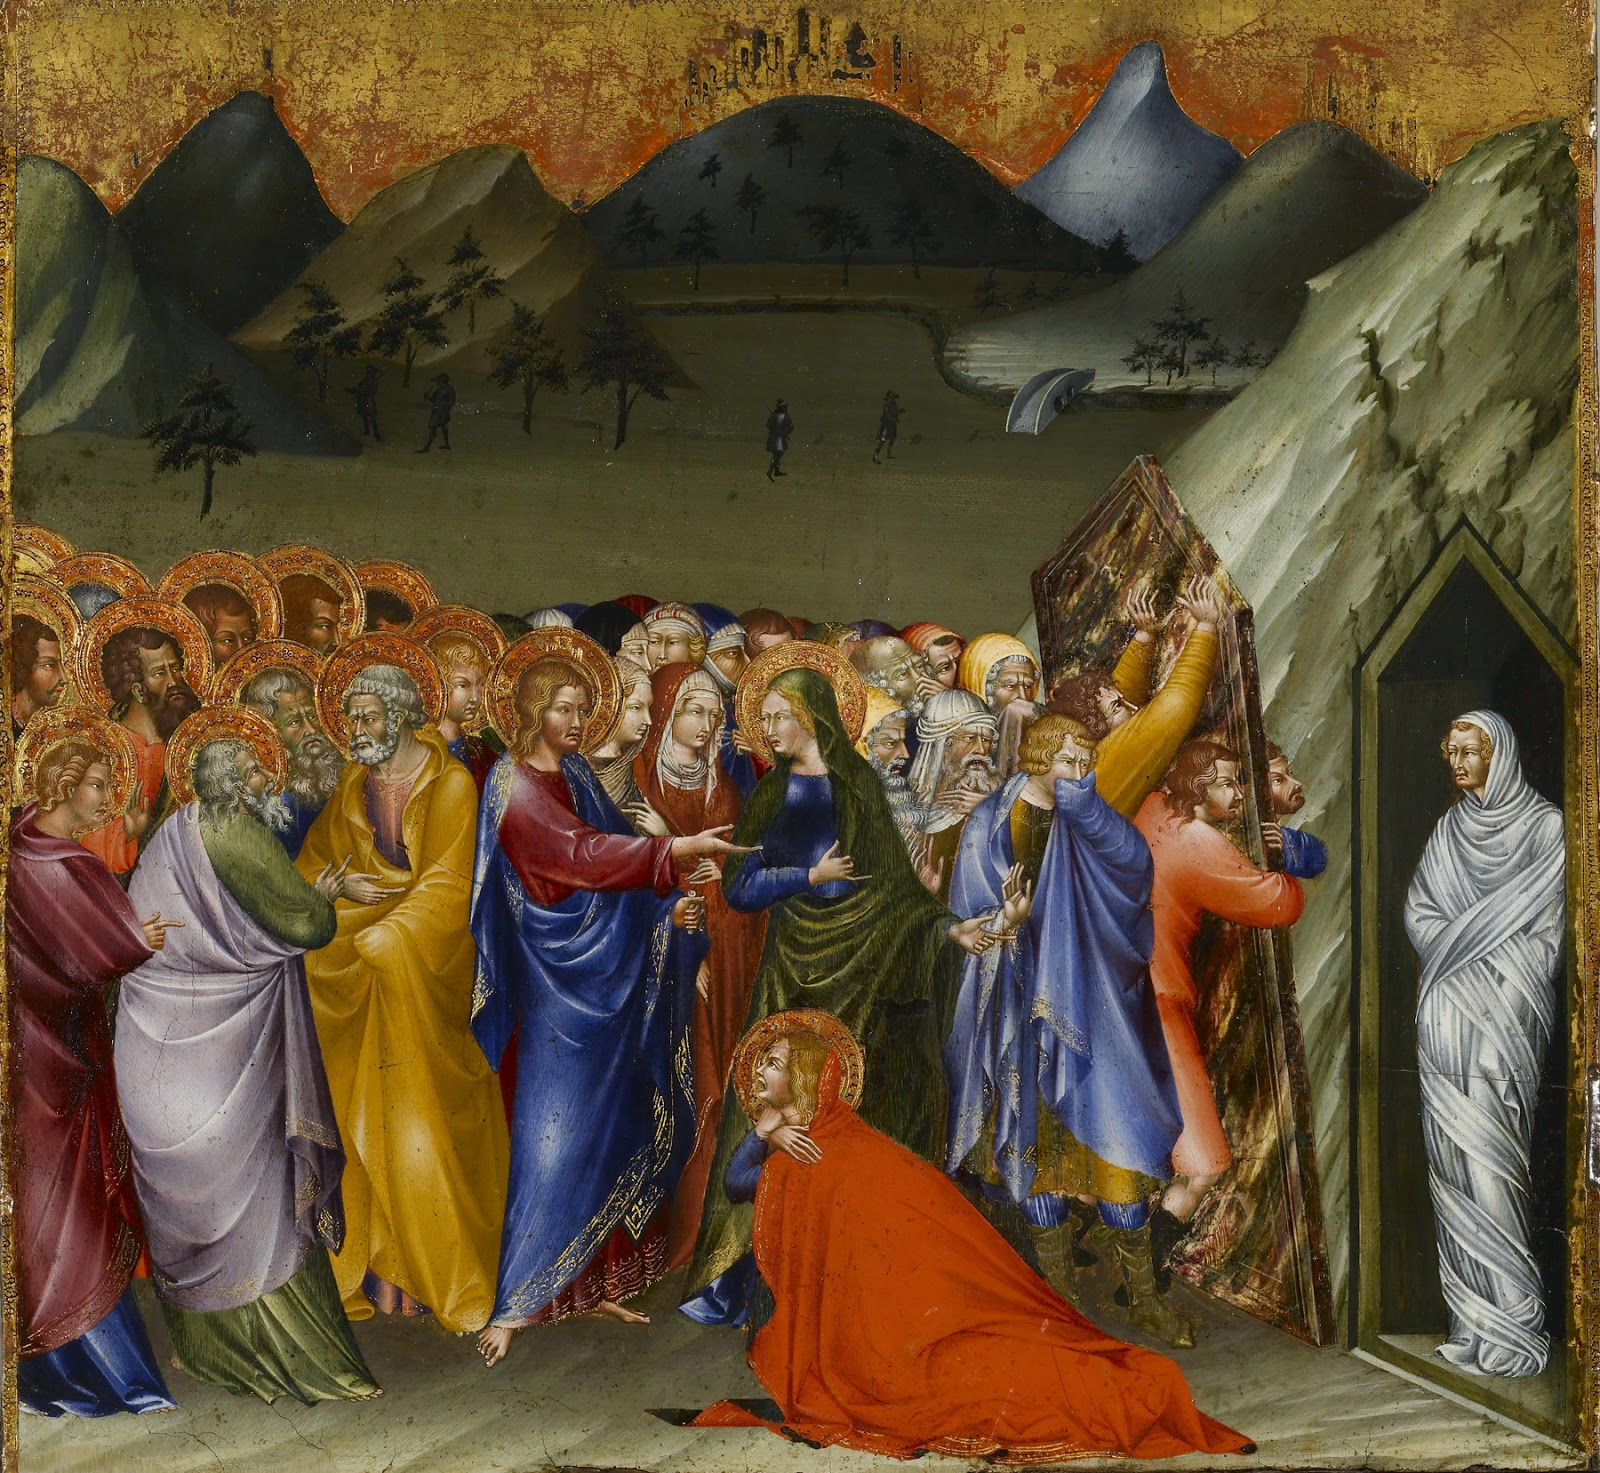 Thomas S Story For 5th Sunday Of Lent Year A